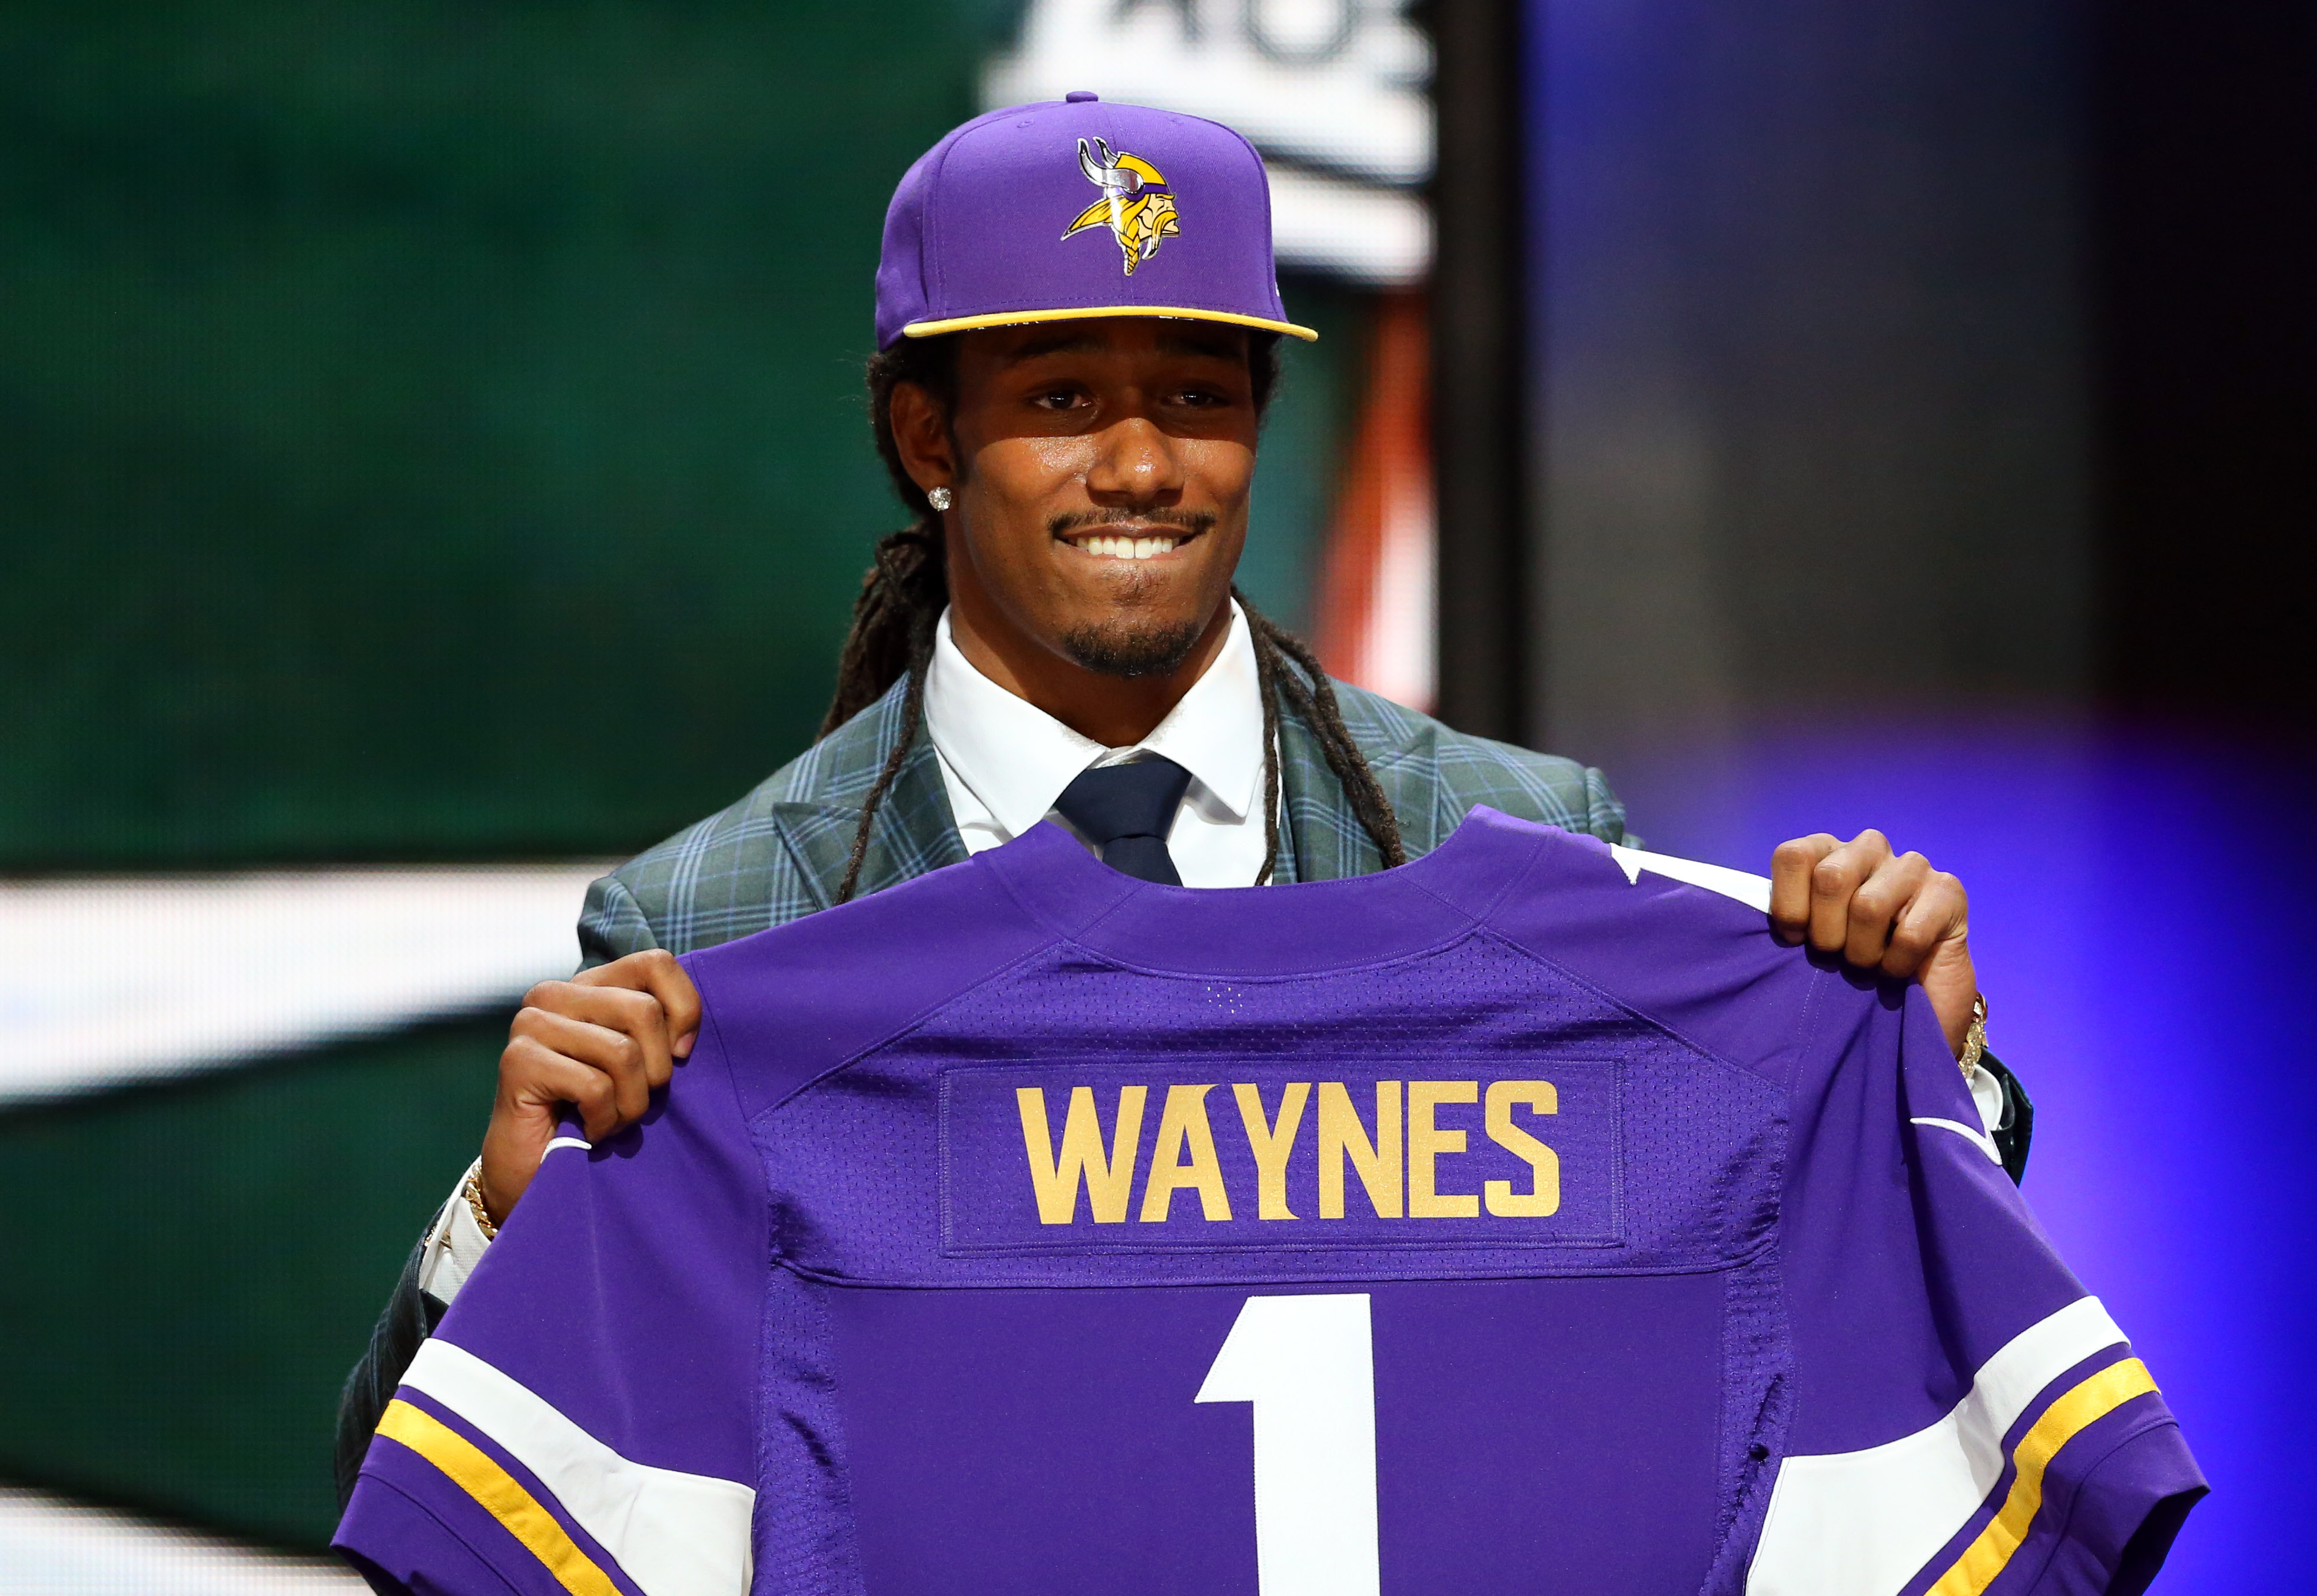 Trae Waynes won't wear #1 for the Vikings. What number will he wear?